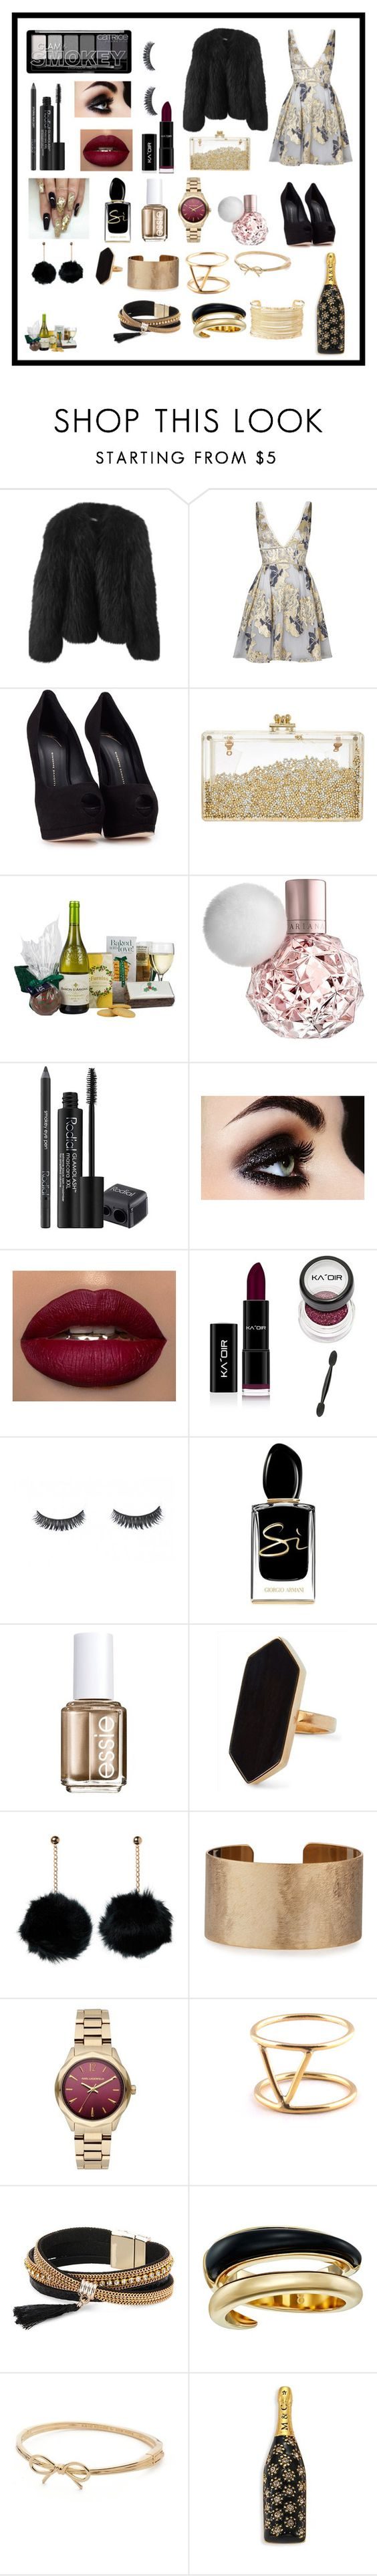 """black gold and white new years eve"" by irenevf ❤ liked on Polyvore featuring Balenciaga, Notte by Marchesa, Giuseppe Zanotti, John Lewis, Rodial, Giorgio Armani, Essie, Jaeger, Panacea and Karl Lagerfeld"